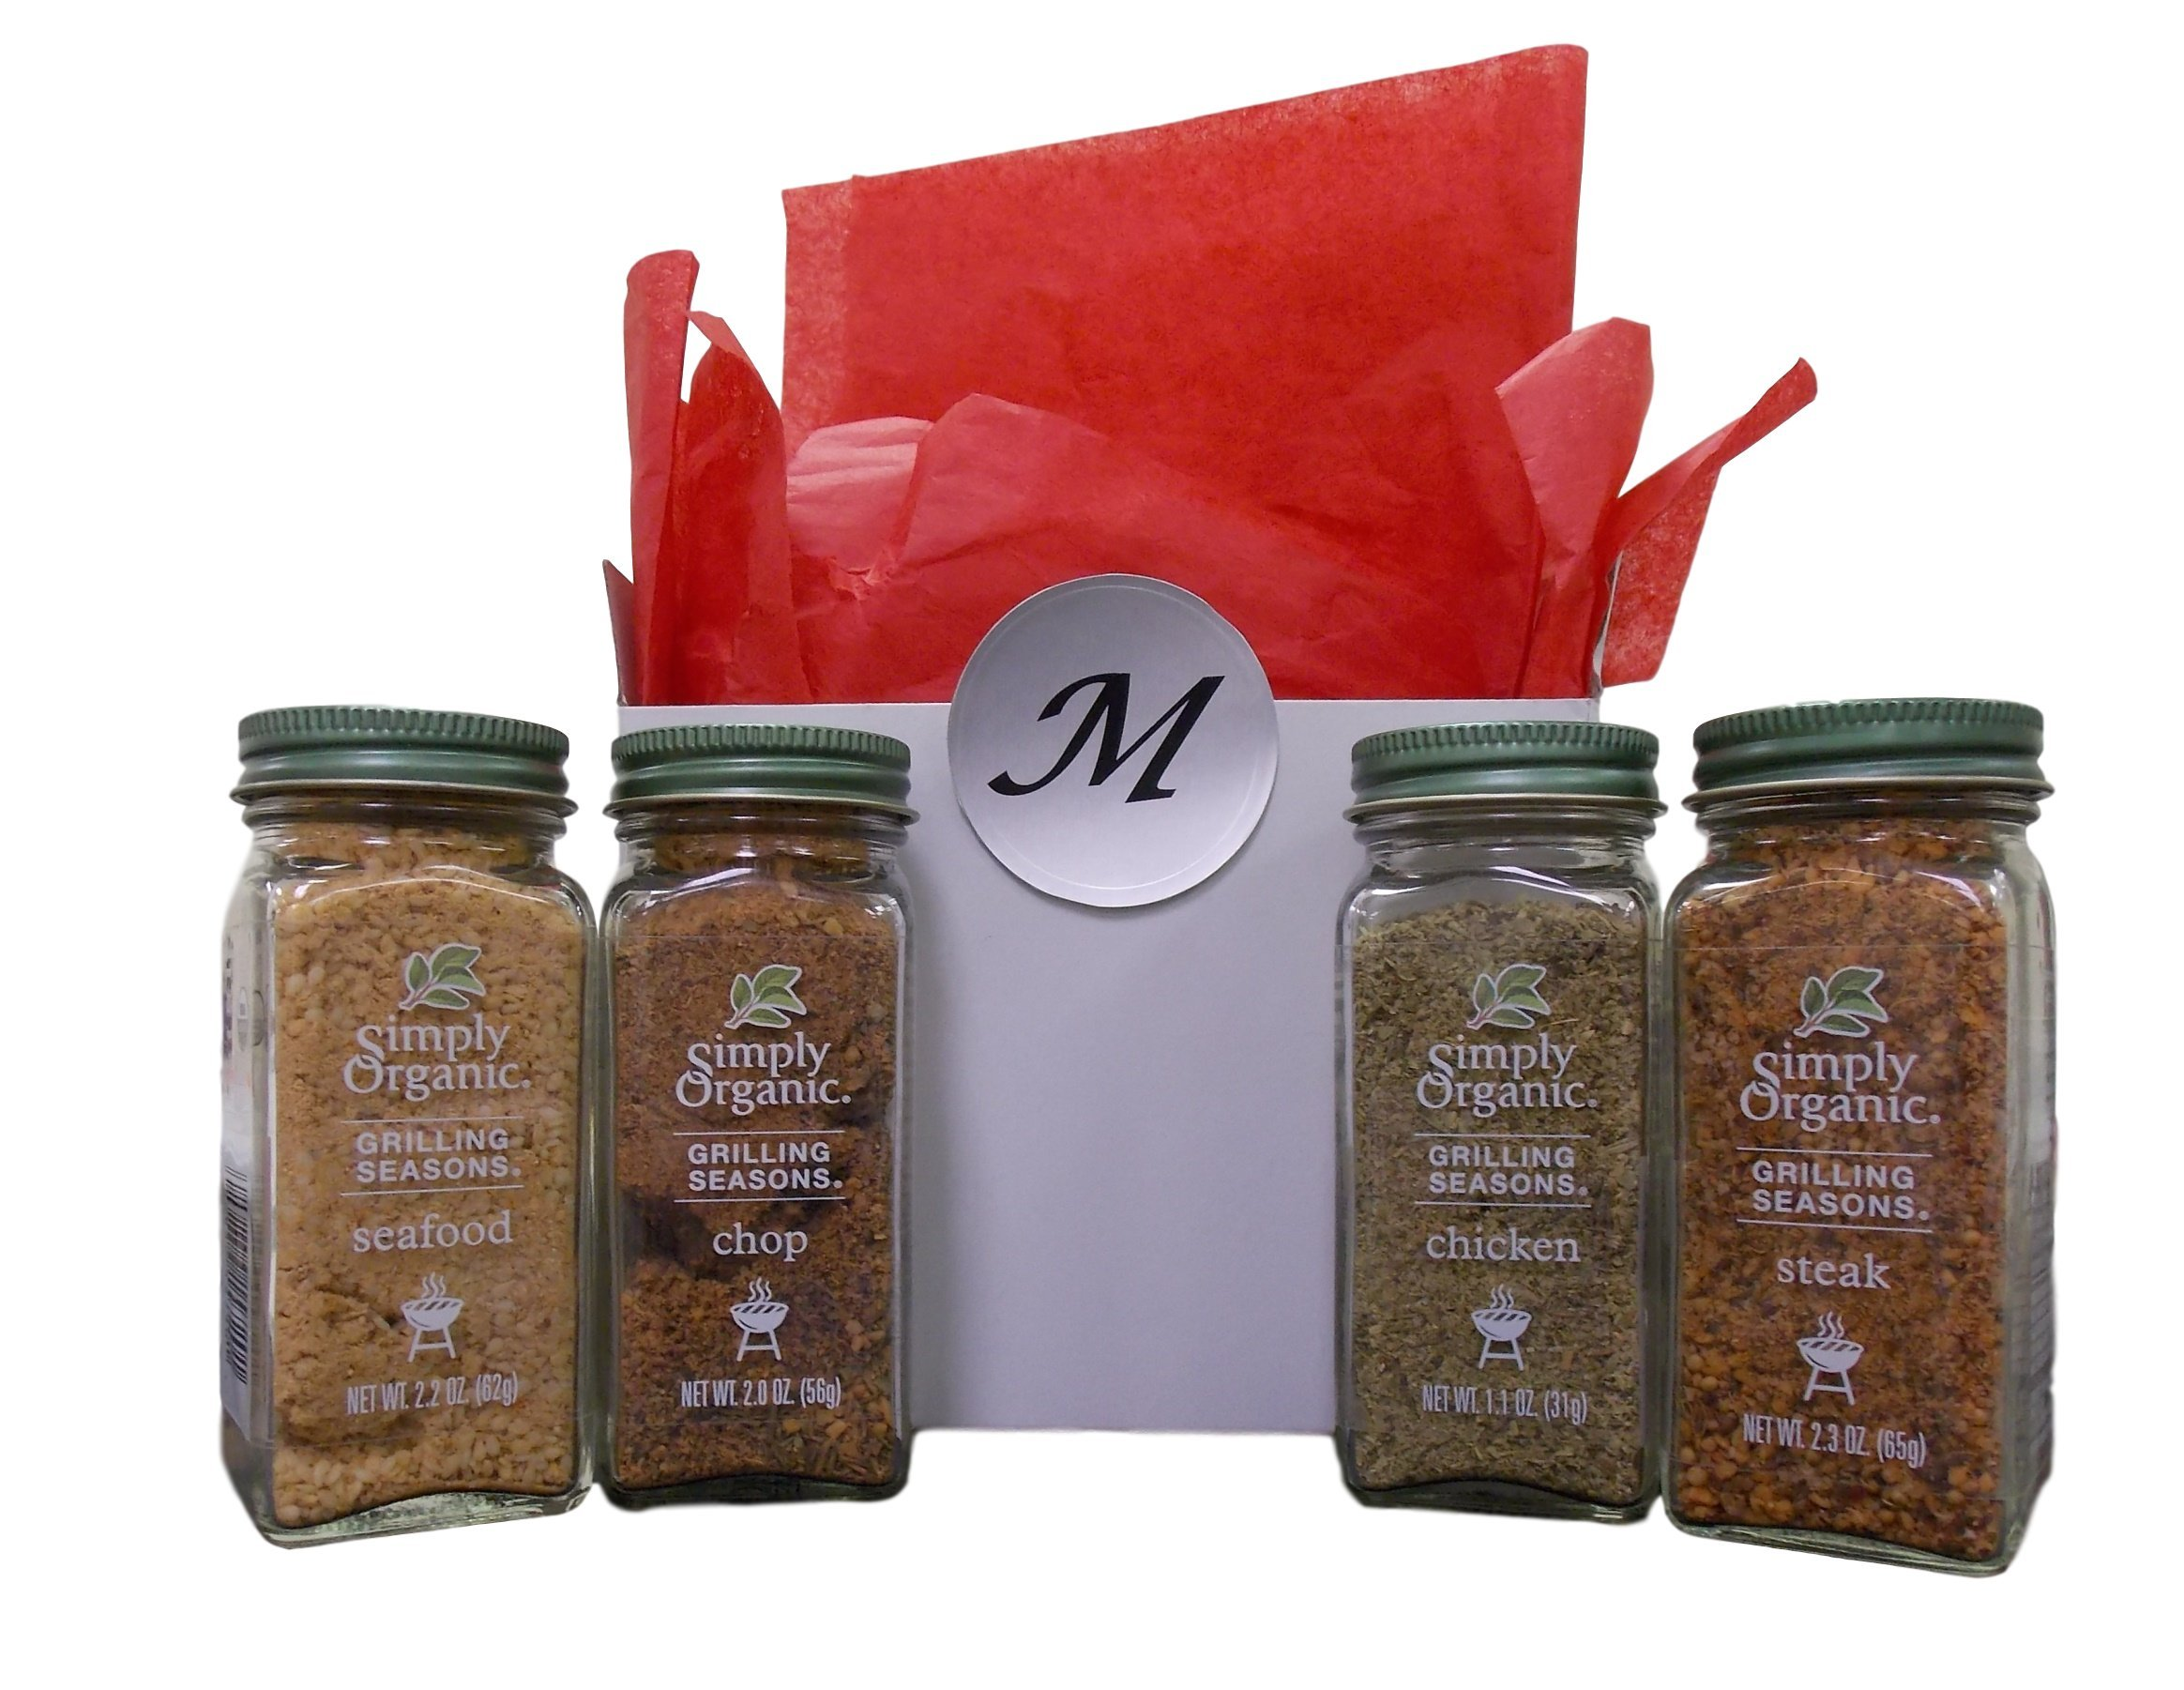 Simply Organic Grilling Seasons Meat Rub 4 Flavor Gift Box Set, (1) each: Steak, Seafood, Chop, and Chicken (1.1-2.3 Ounces)